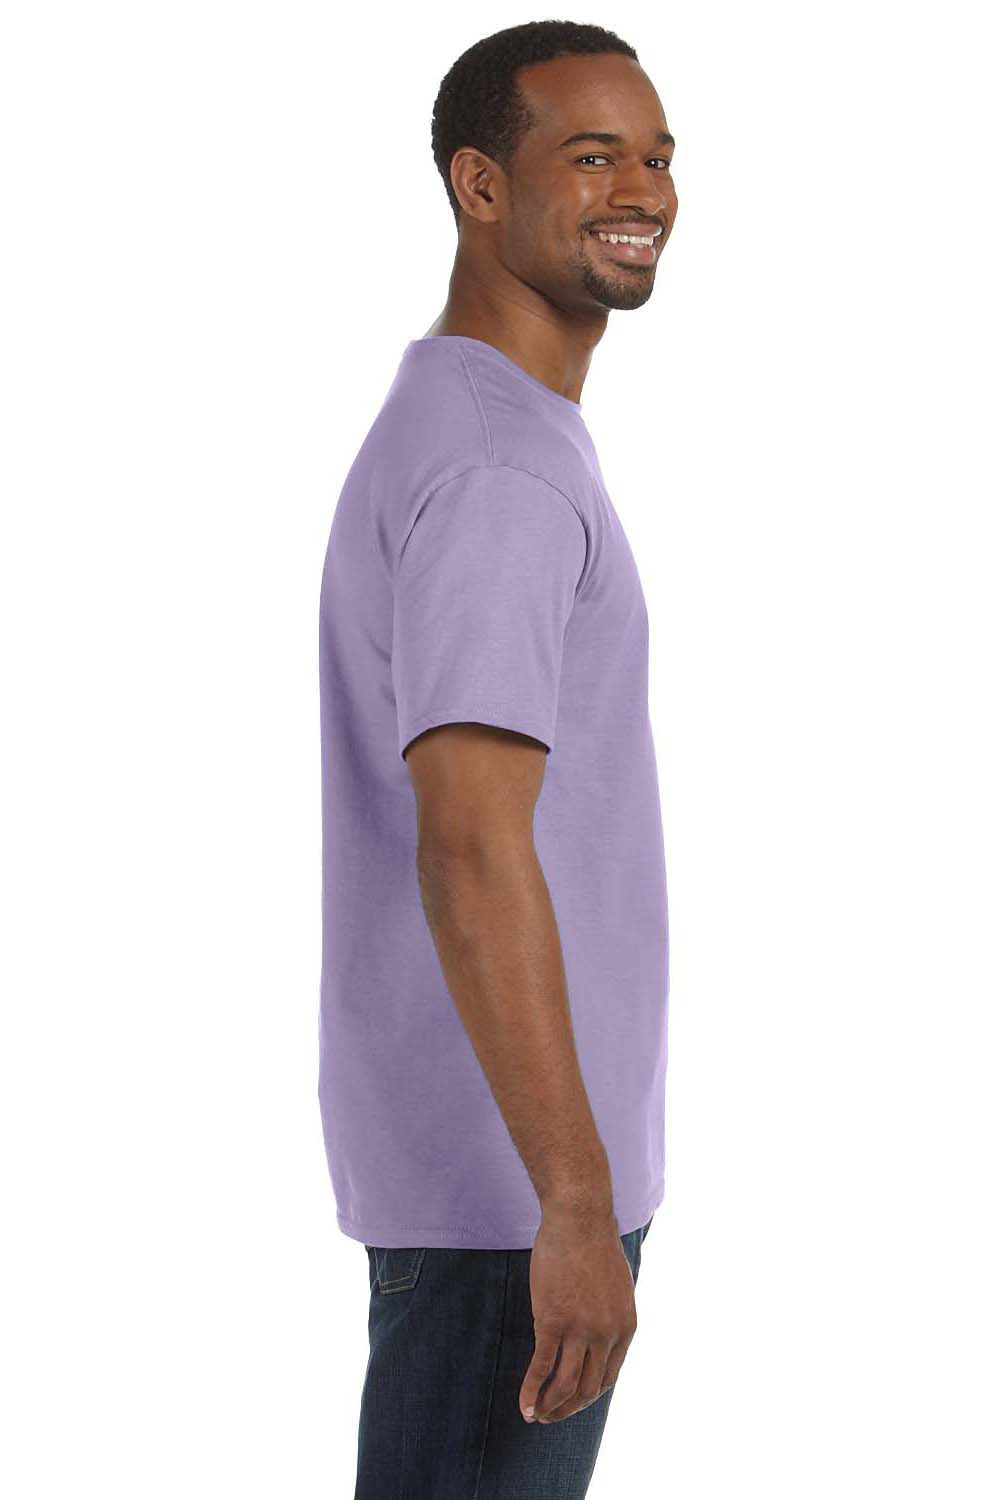 Hanes 5250T Mens ComfortSoft Short Sleeve Crewneck T-Shirt Lavender Purple Side